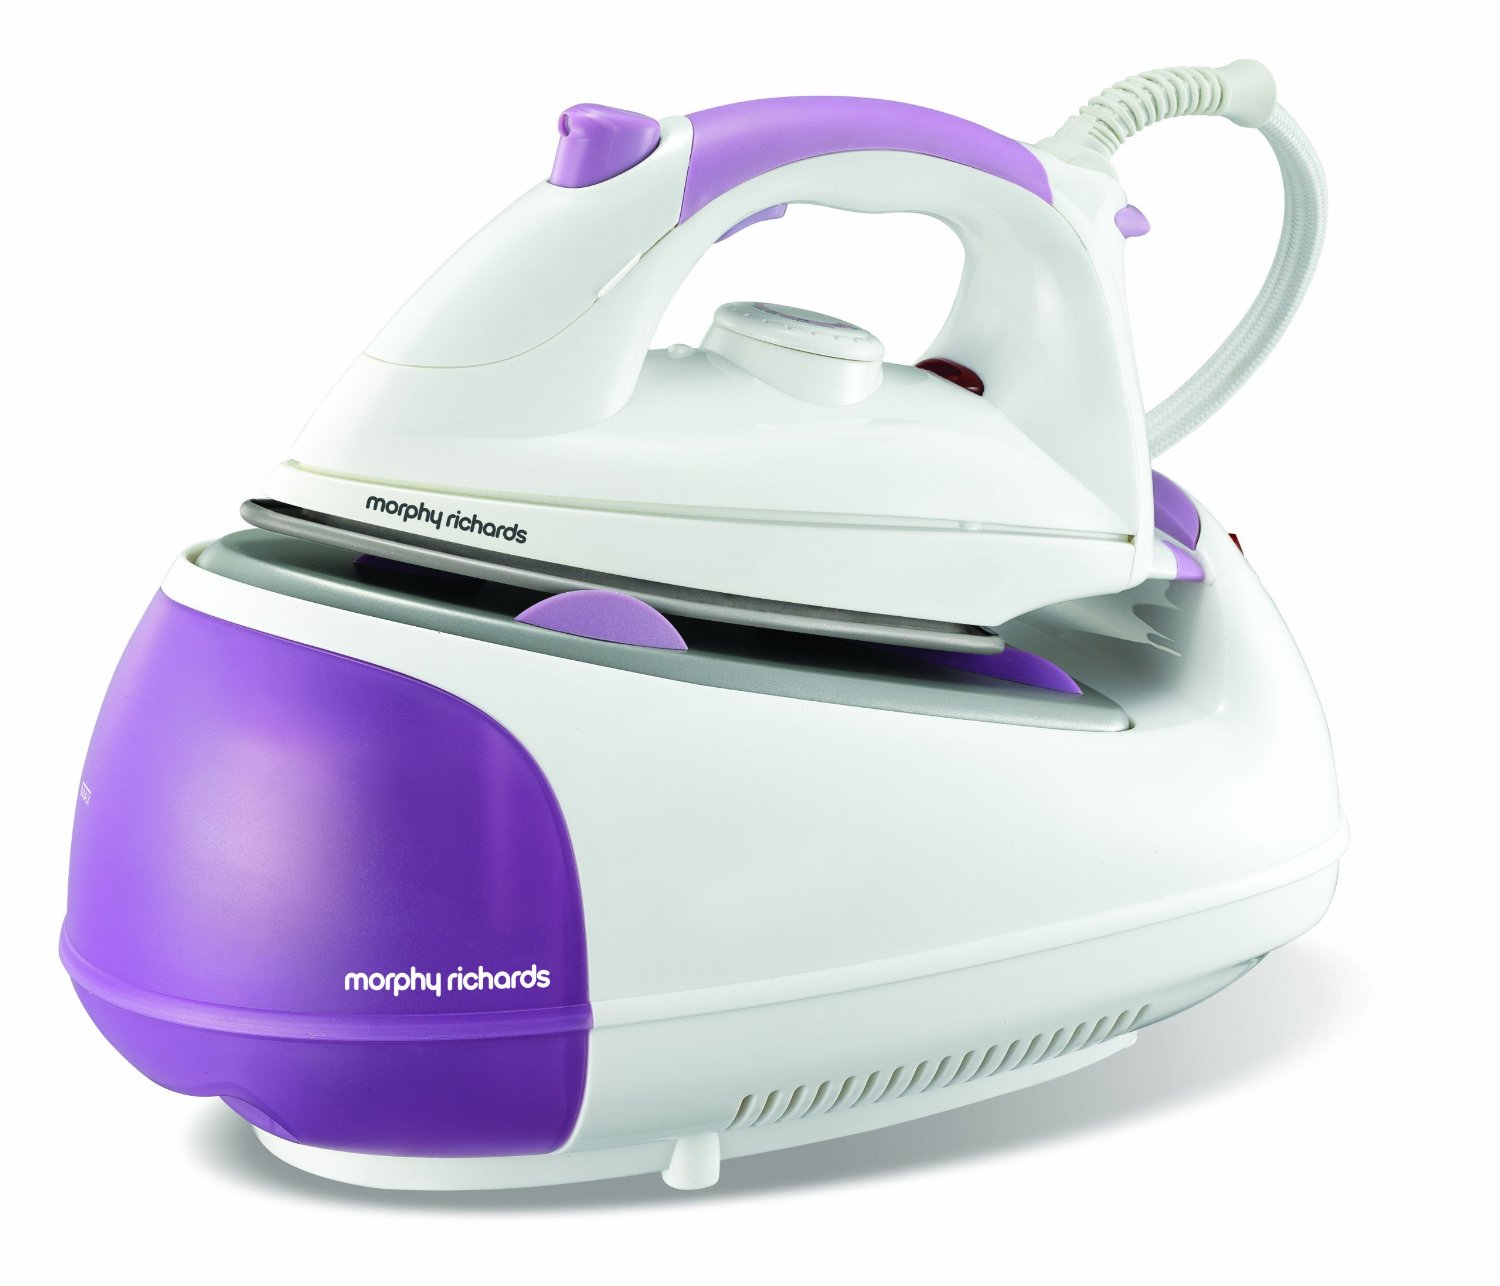 Morphy Richards Jet Stream UK Review